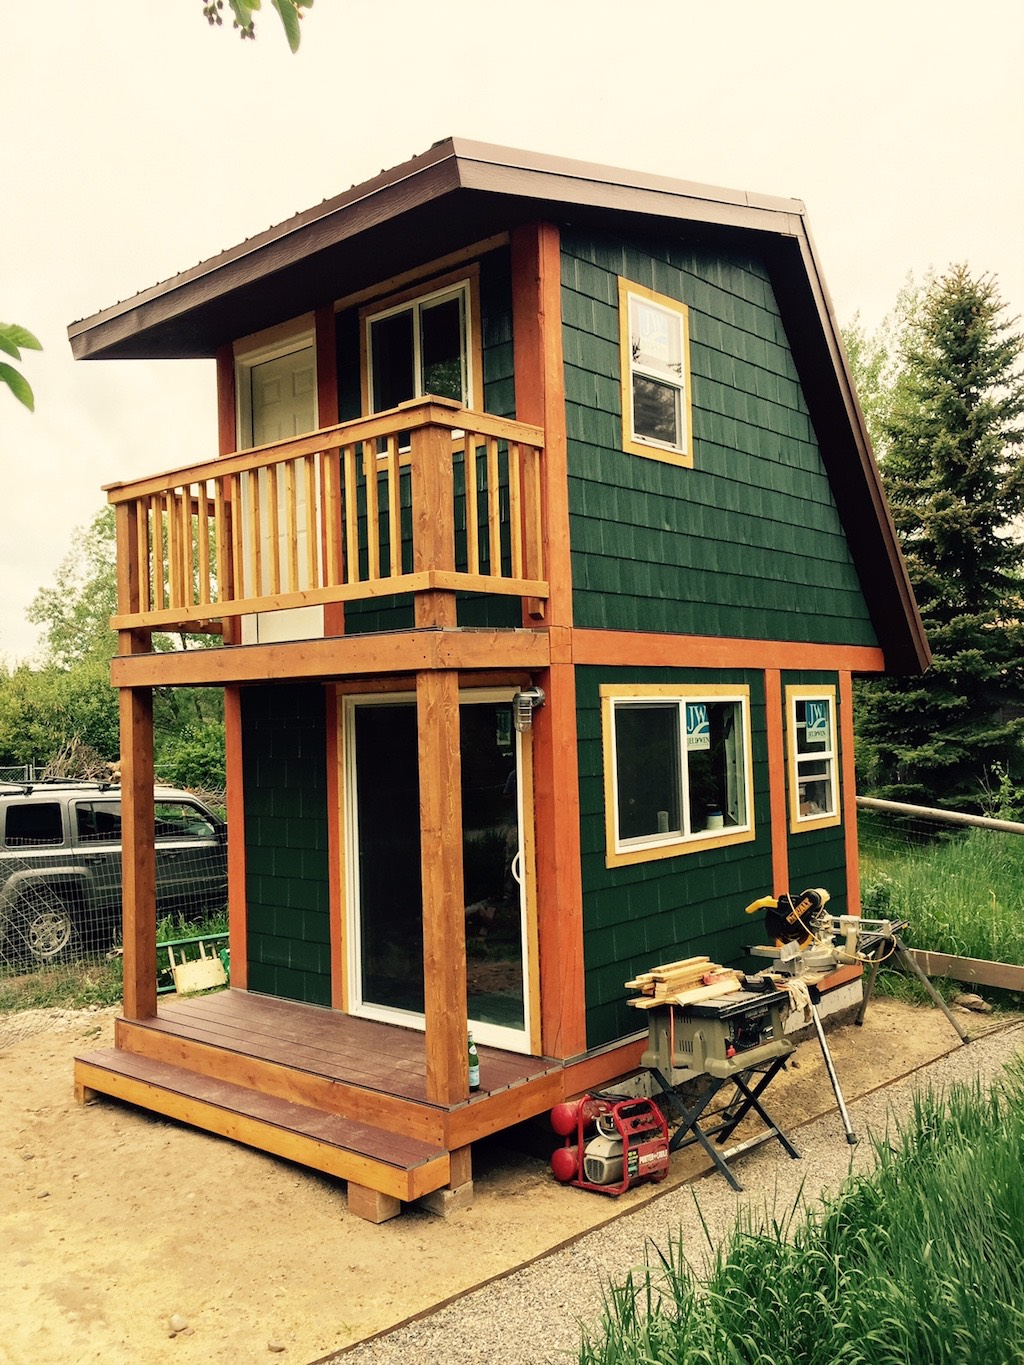 The spacious elegant two story tiny house tiny houses for Small 2 story modular homes